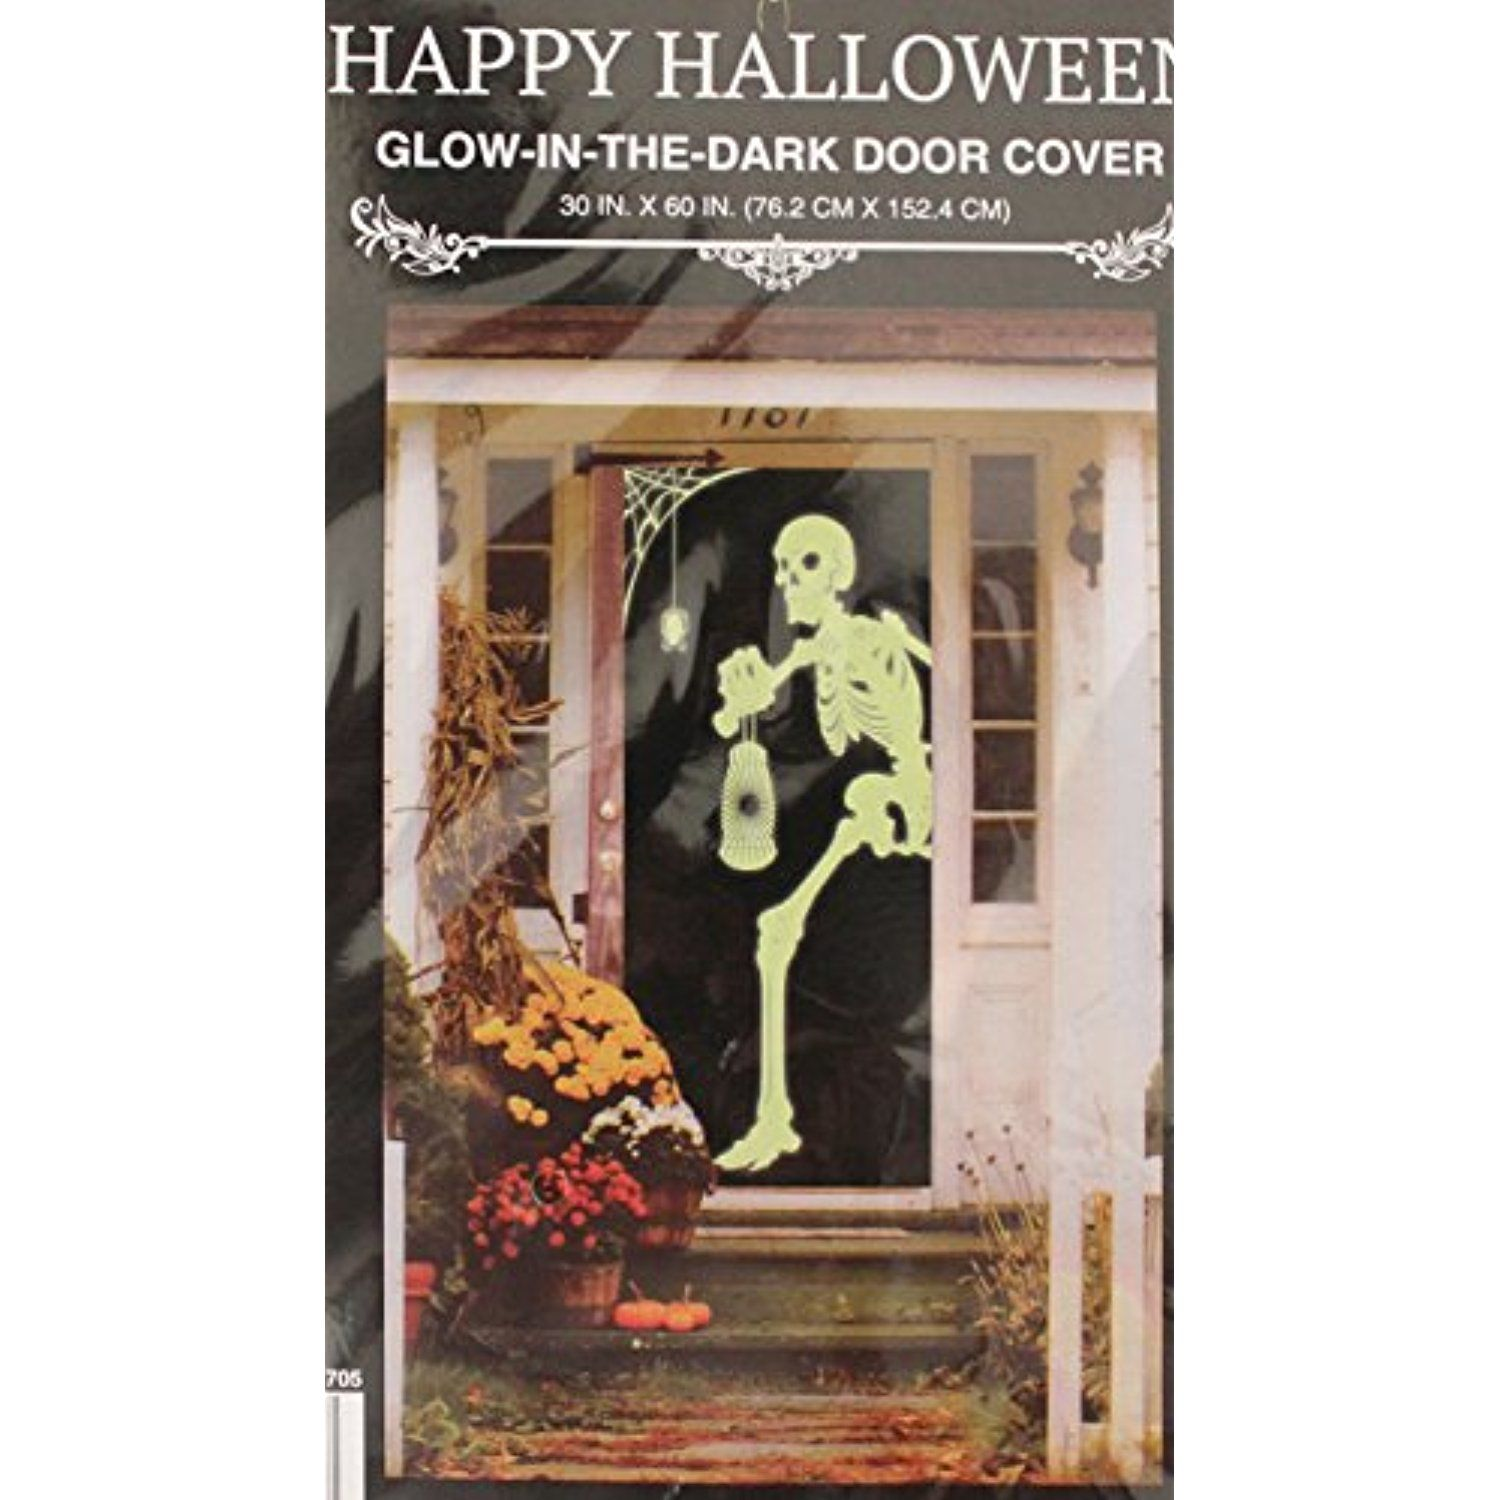 Scary Skeleton, Glow in the dark, Door Cover, Mural, Halloween - Halloween Door Decoration Ideas